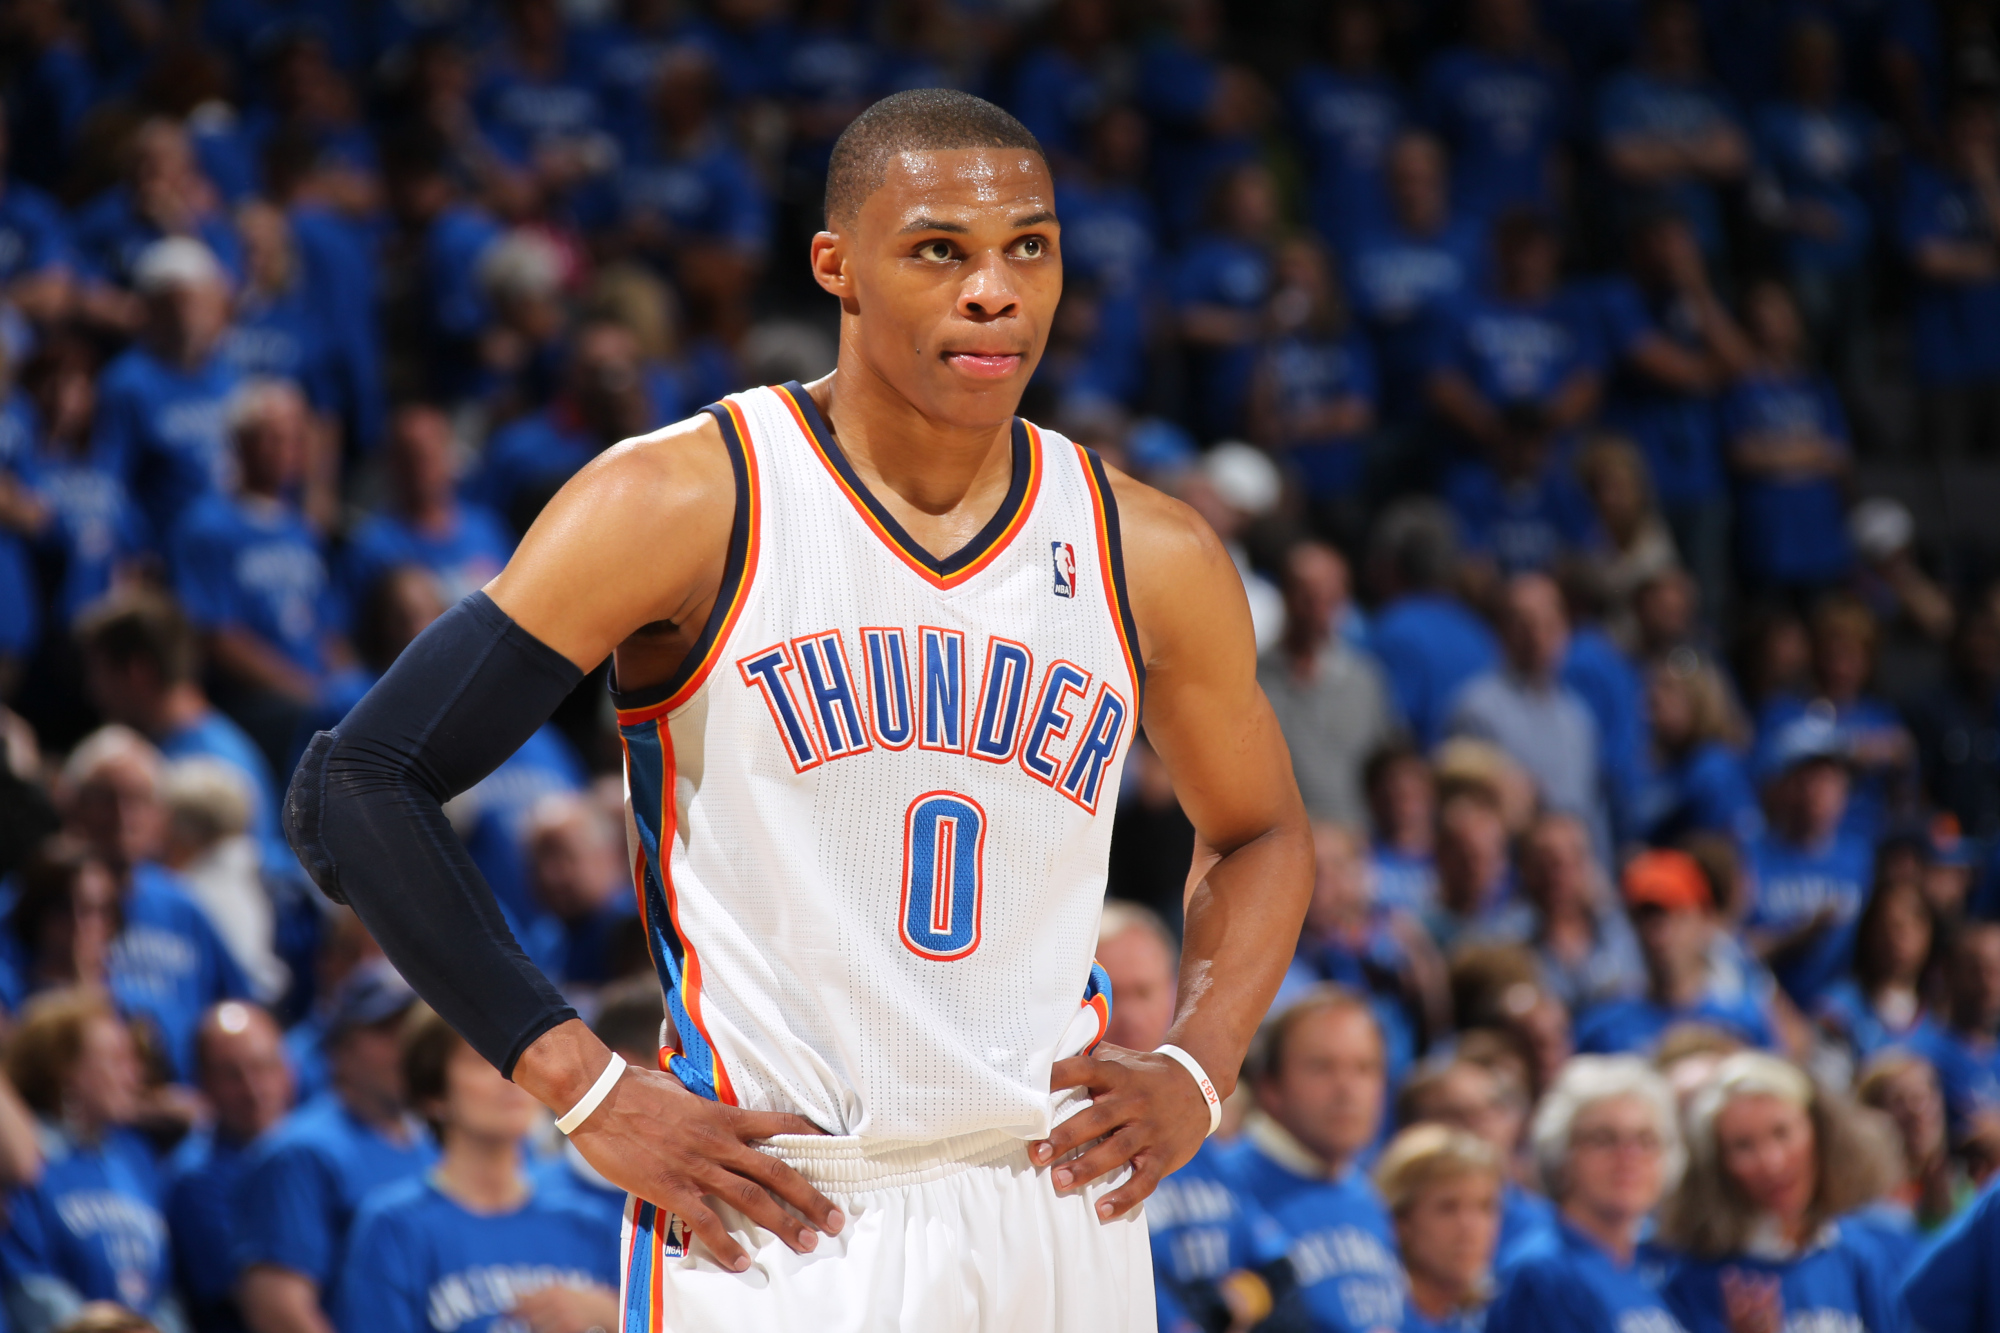 Russell Westbrook discusses fashion not Kevin Durant